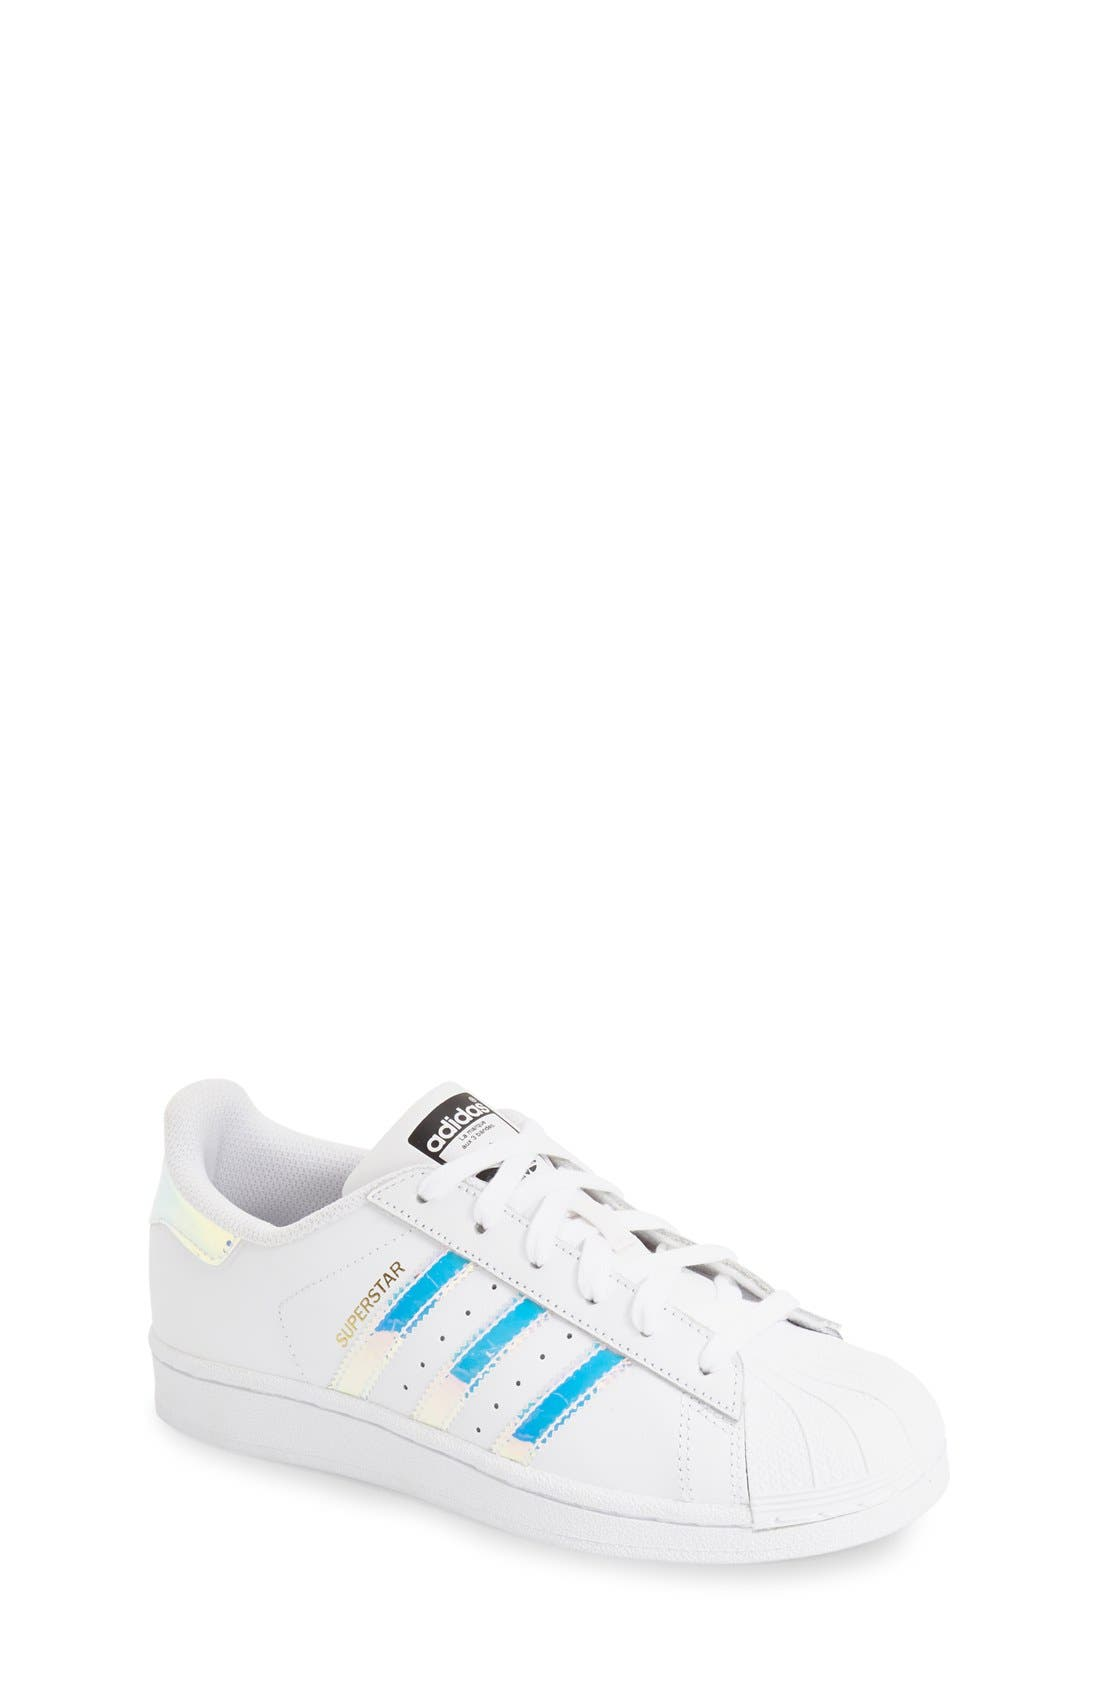 adidas Superstar - Iridescent Sneaker (Big Kid)